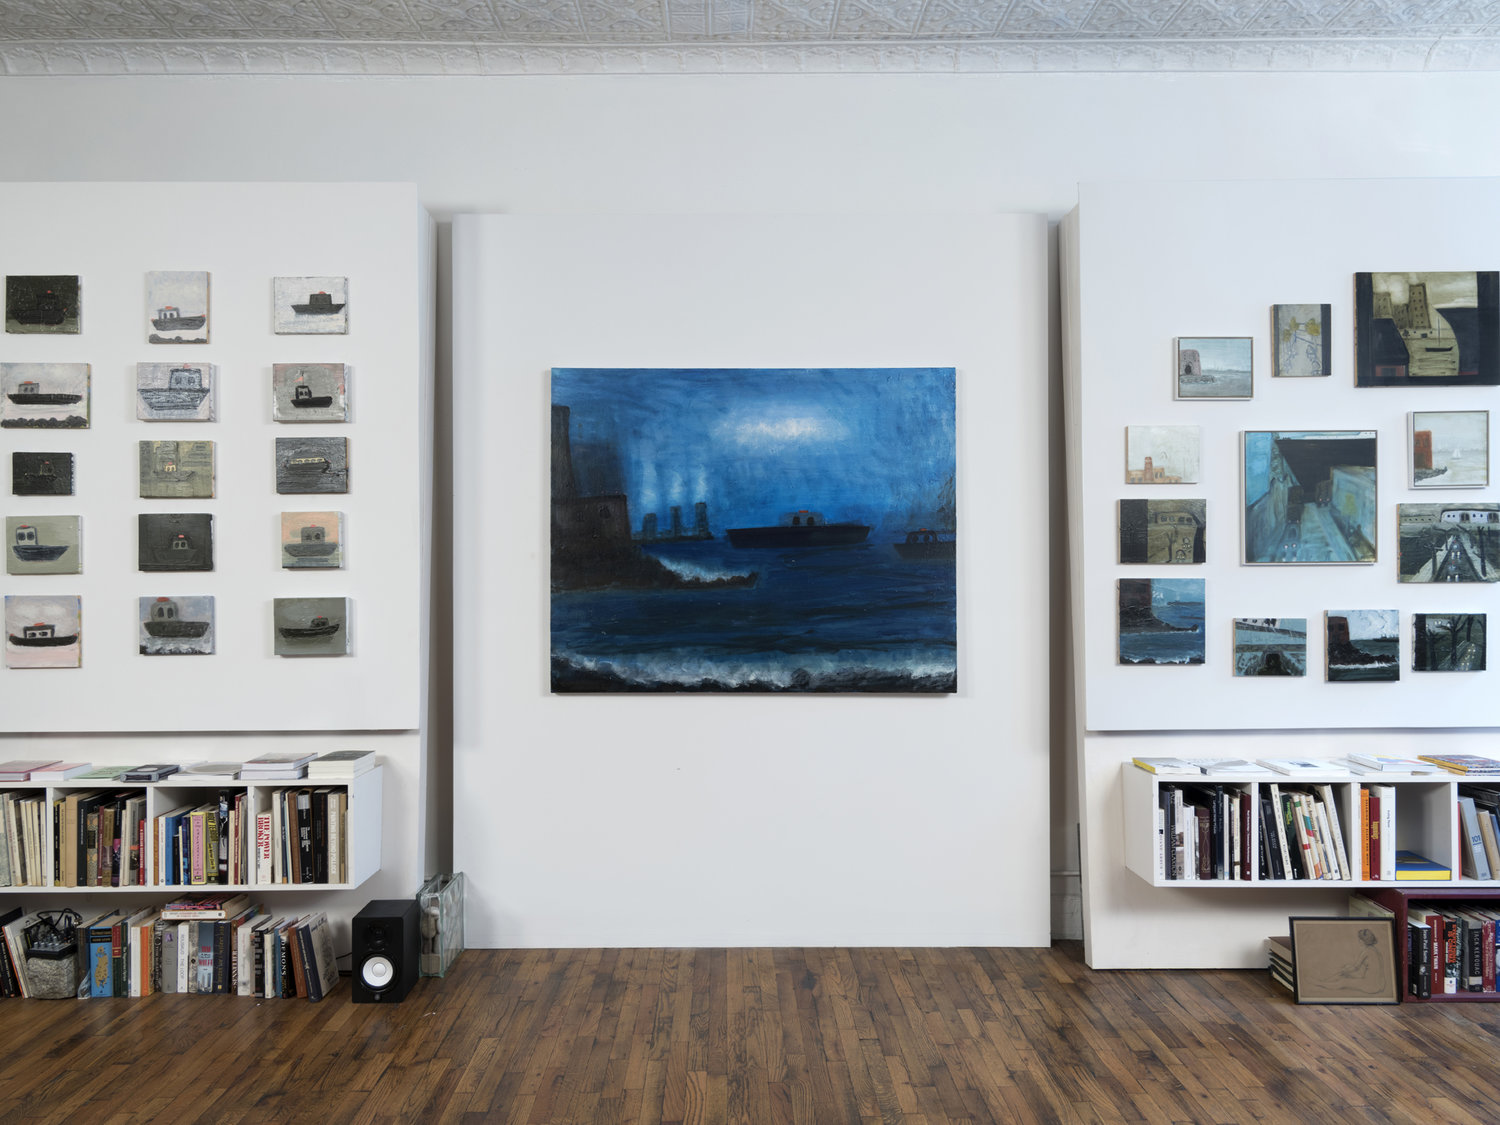 Spoonbill Studio - Curated by Madeleine Mermall